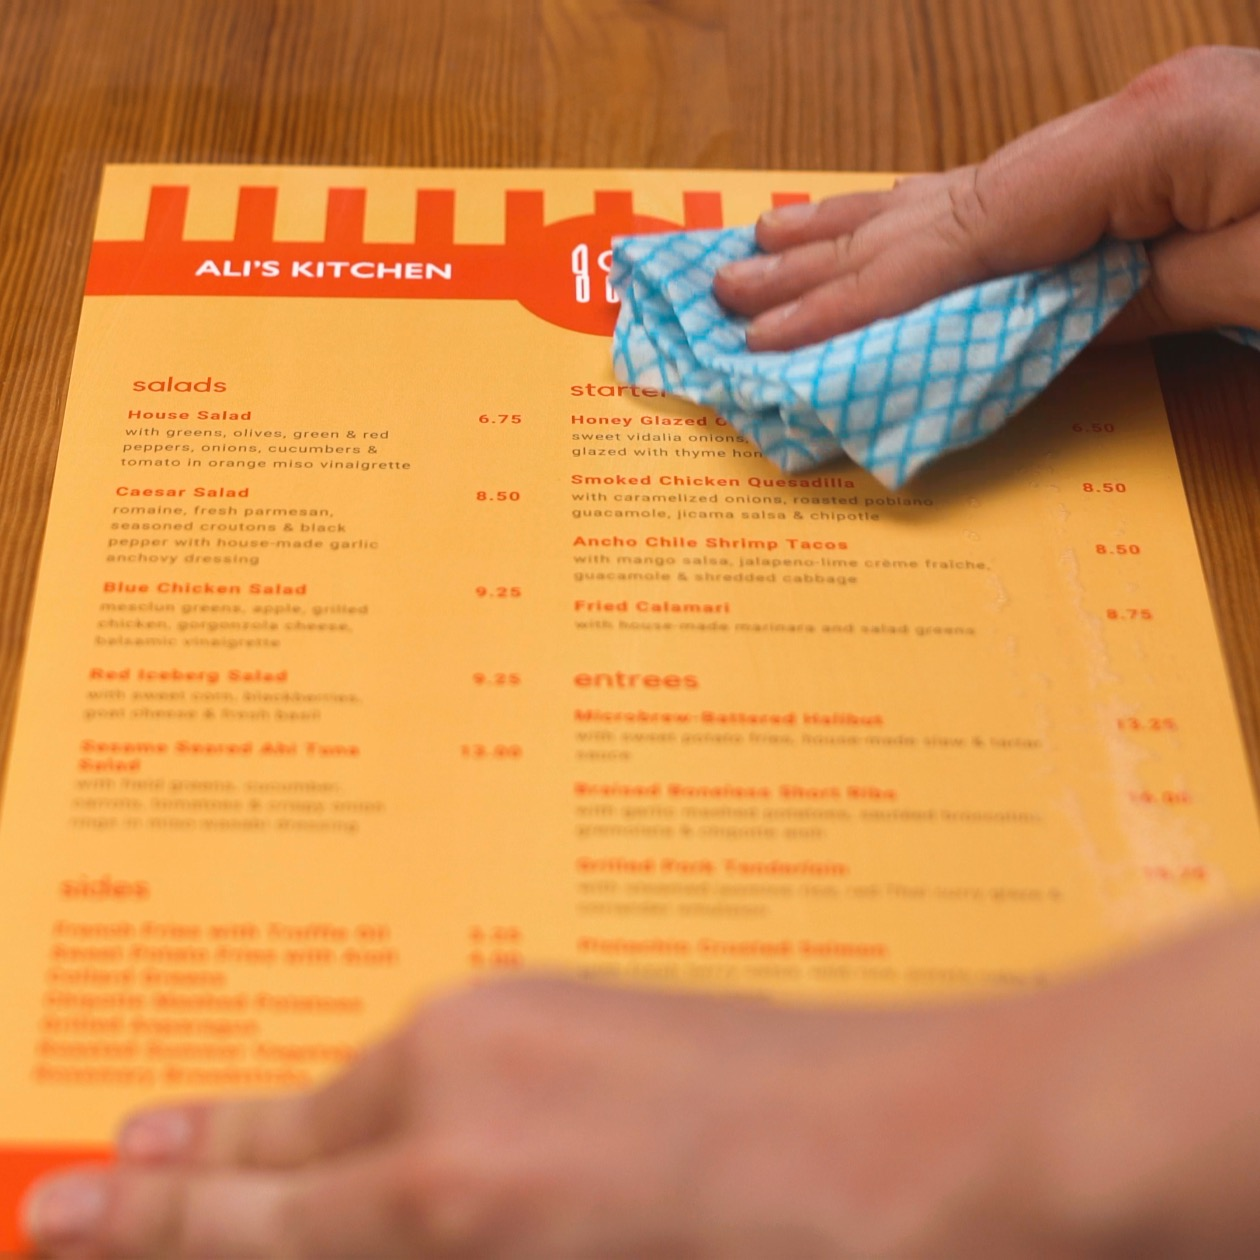 Waterproof Menu